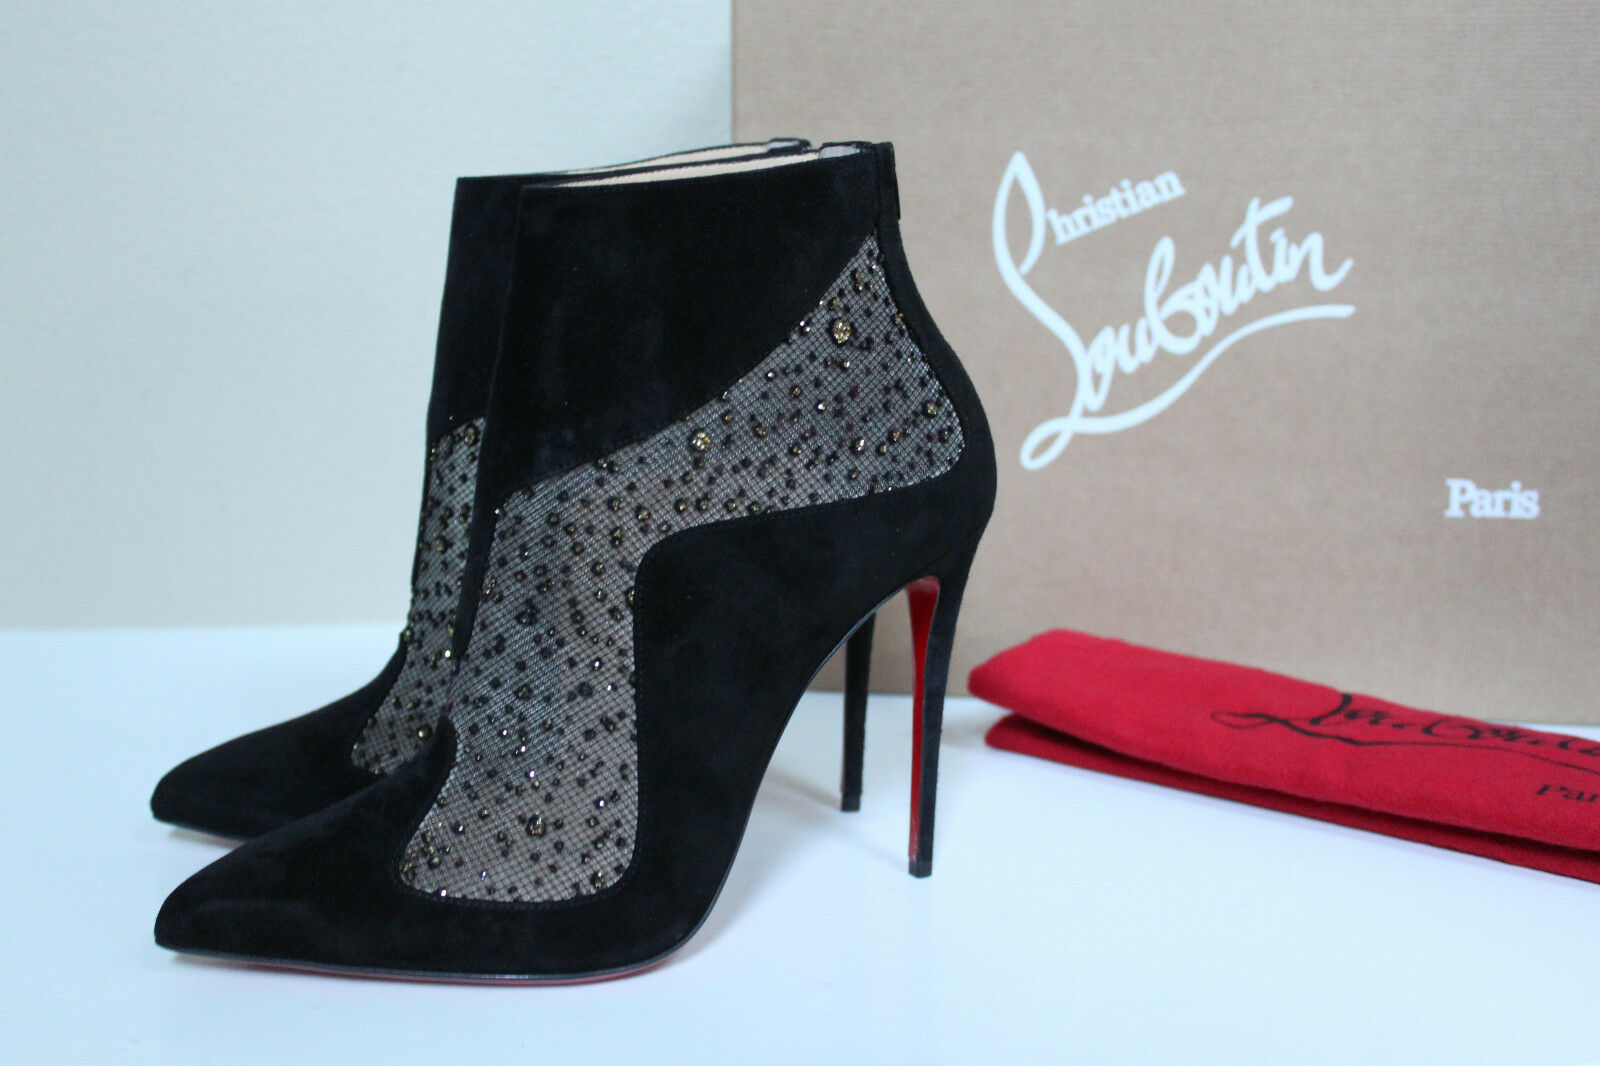 New sz 6 / 36.5 Christian Suede Louboutin Papillo Black Suede Christian Pointed Toe Bootie Shoes 9ab677